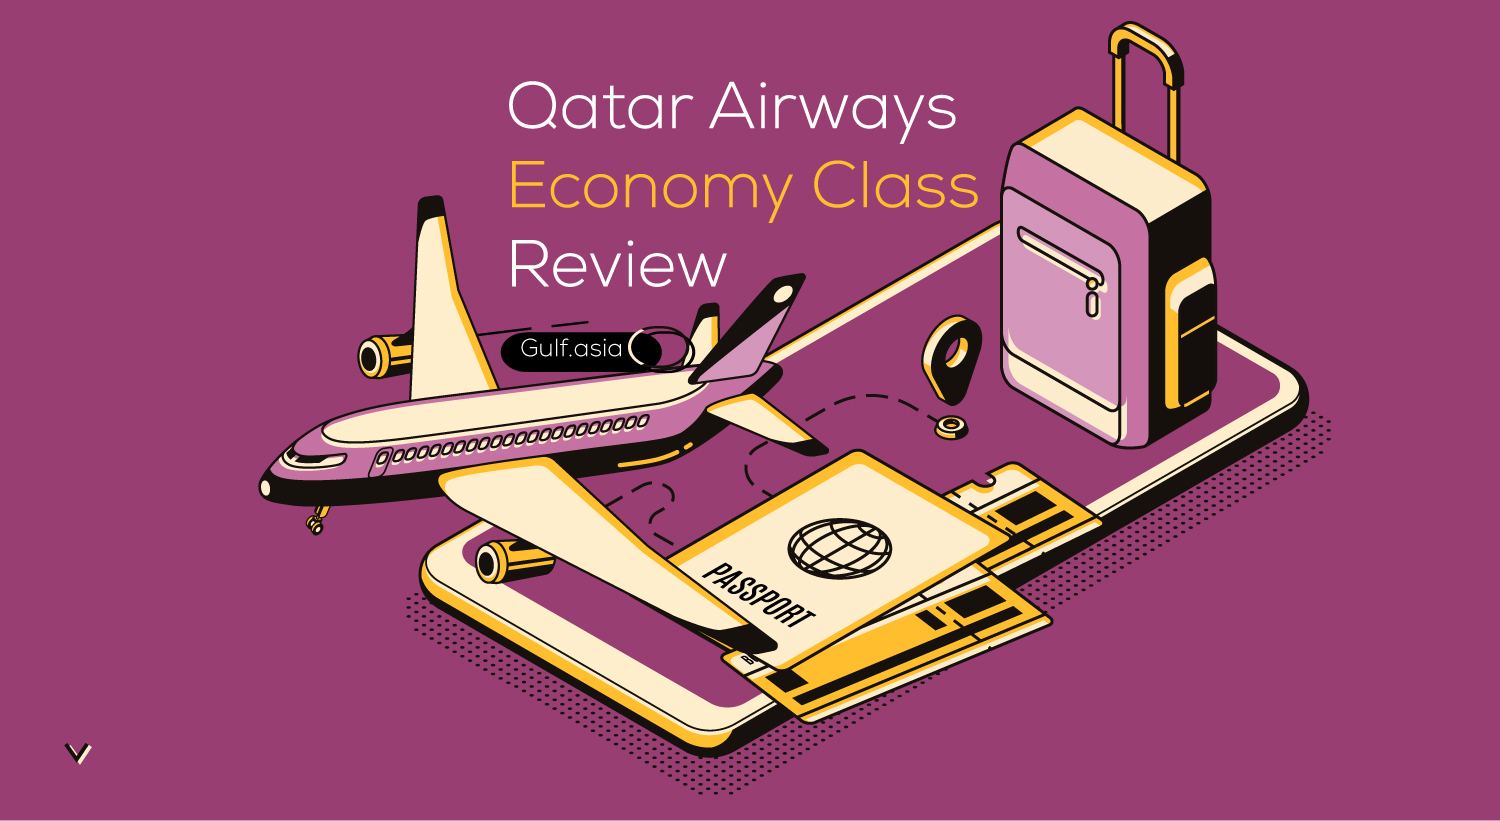 Qatar Airways Economy Class Review: Food, Seats and More